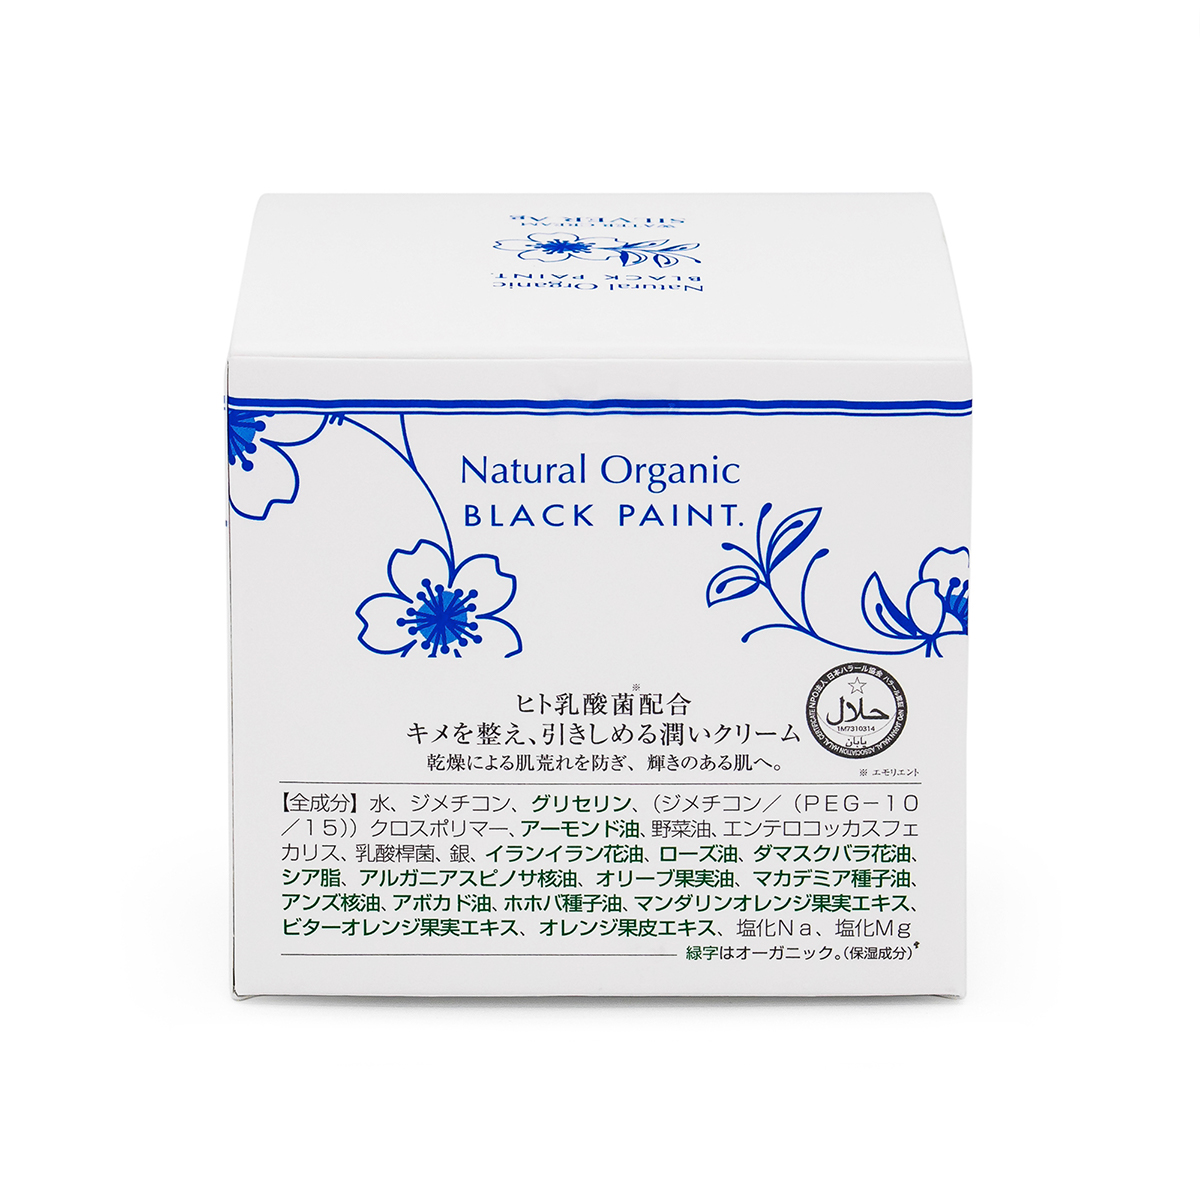 Water Cream Silver 100g with Human Microbiome - box side 2